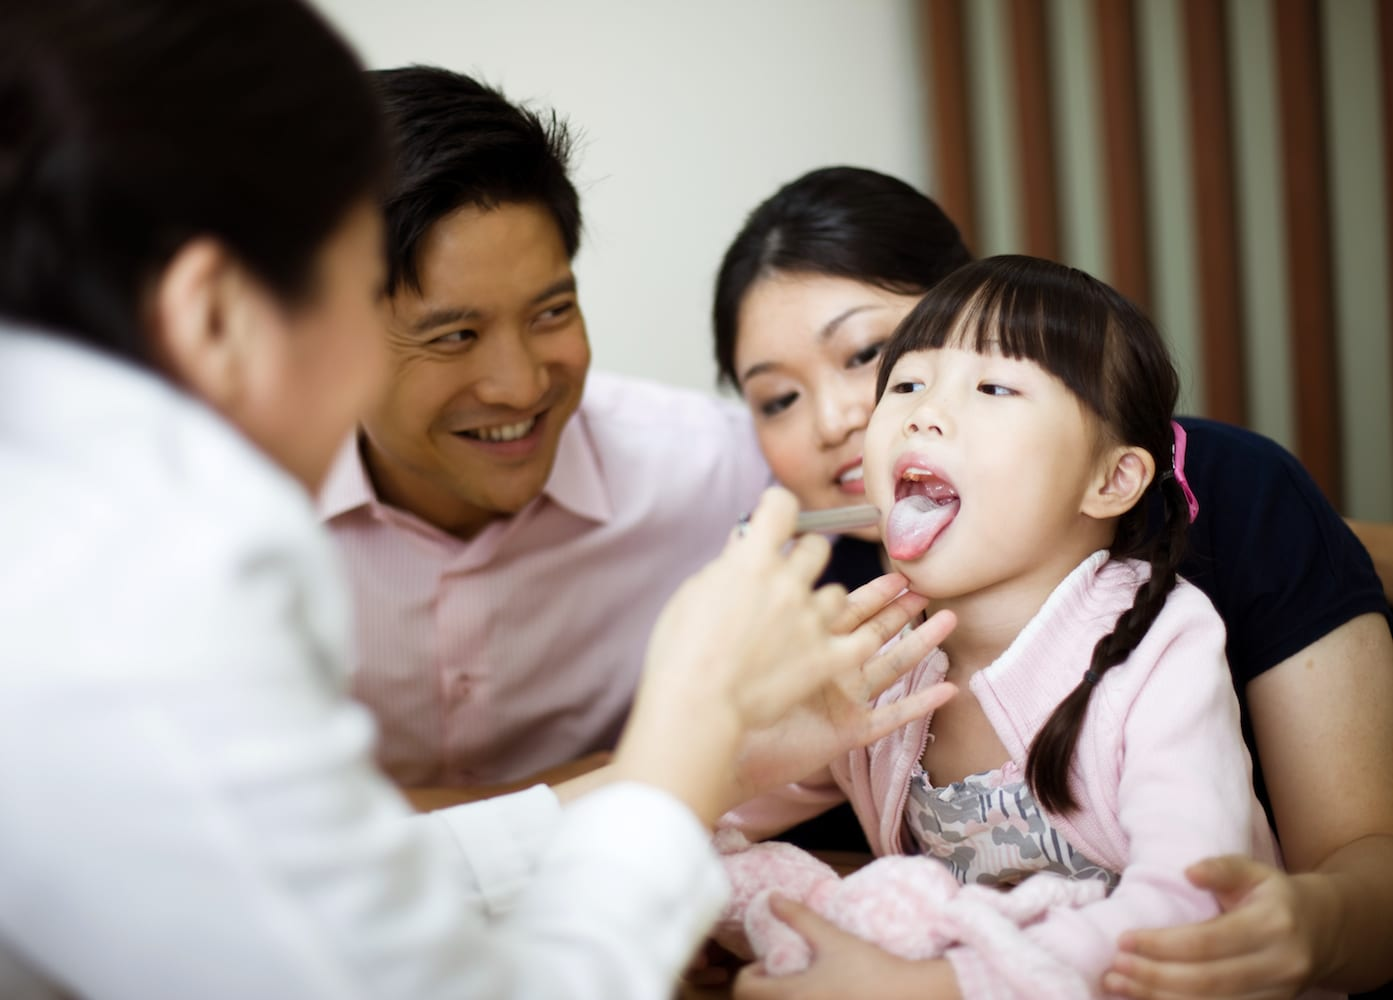 The experts at Eu Yan Sang TCM clinic show how to cure bub's colds and coughs with TCM